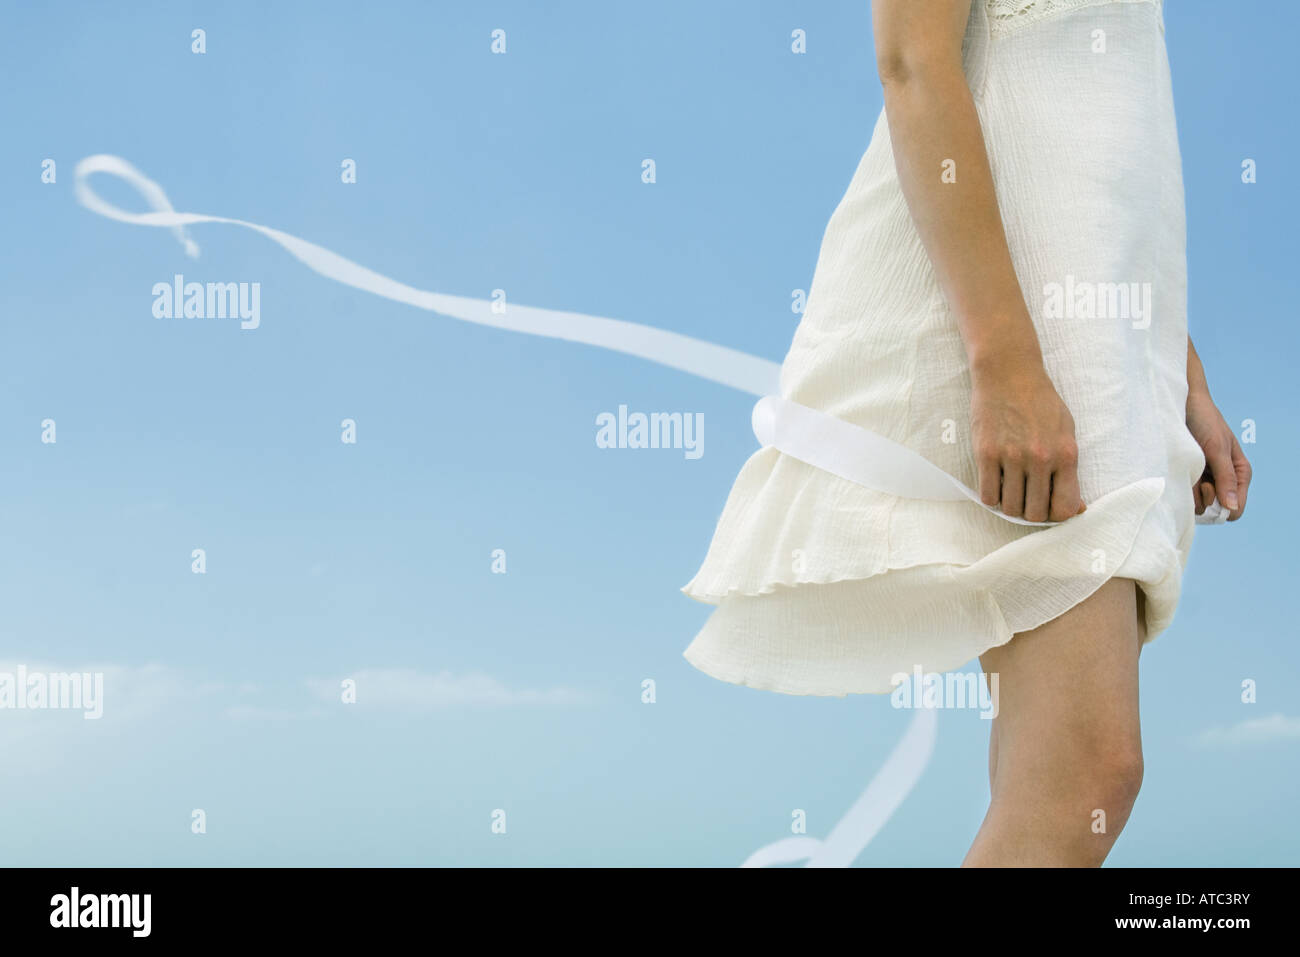 Woman in dress holding ribbon, tousled by wind, cropped view - Stock Image